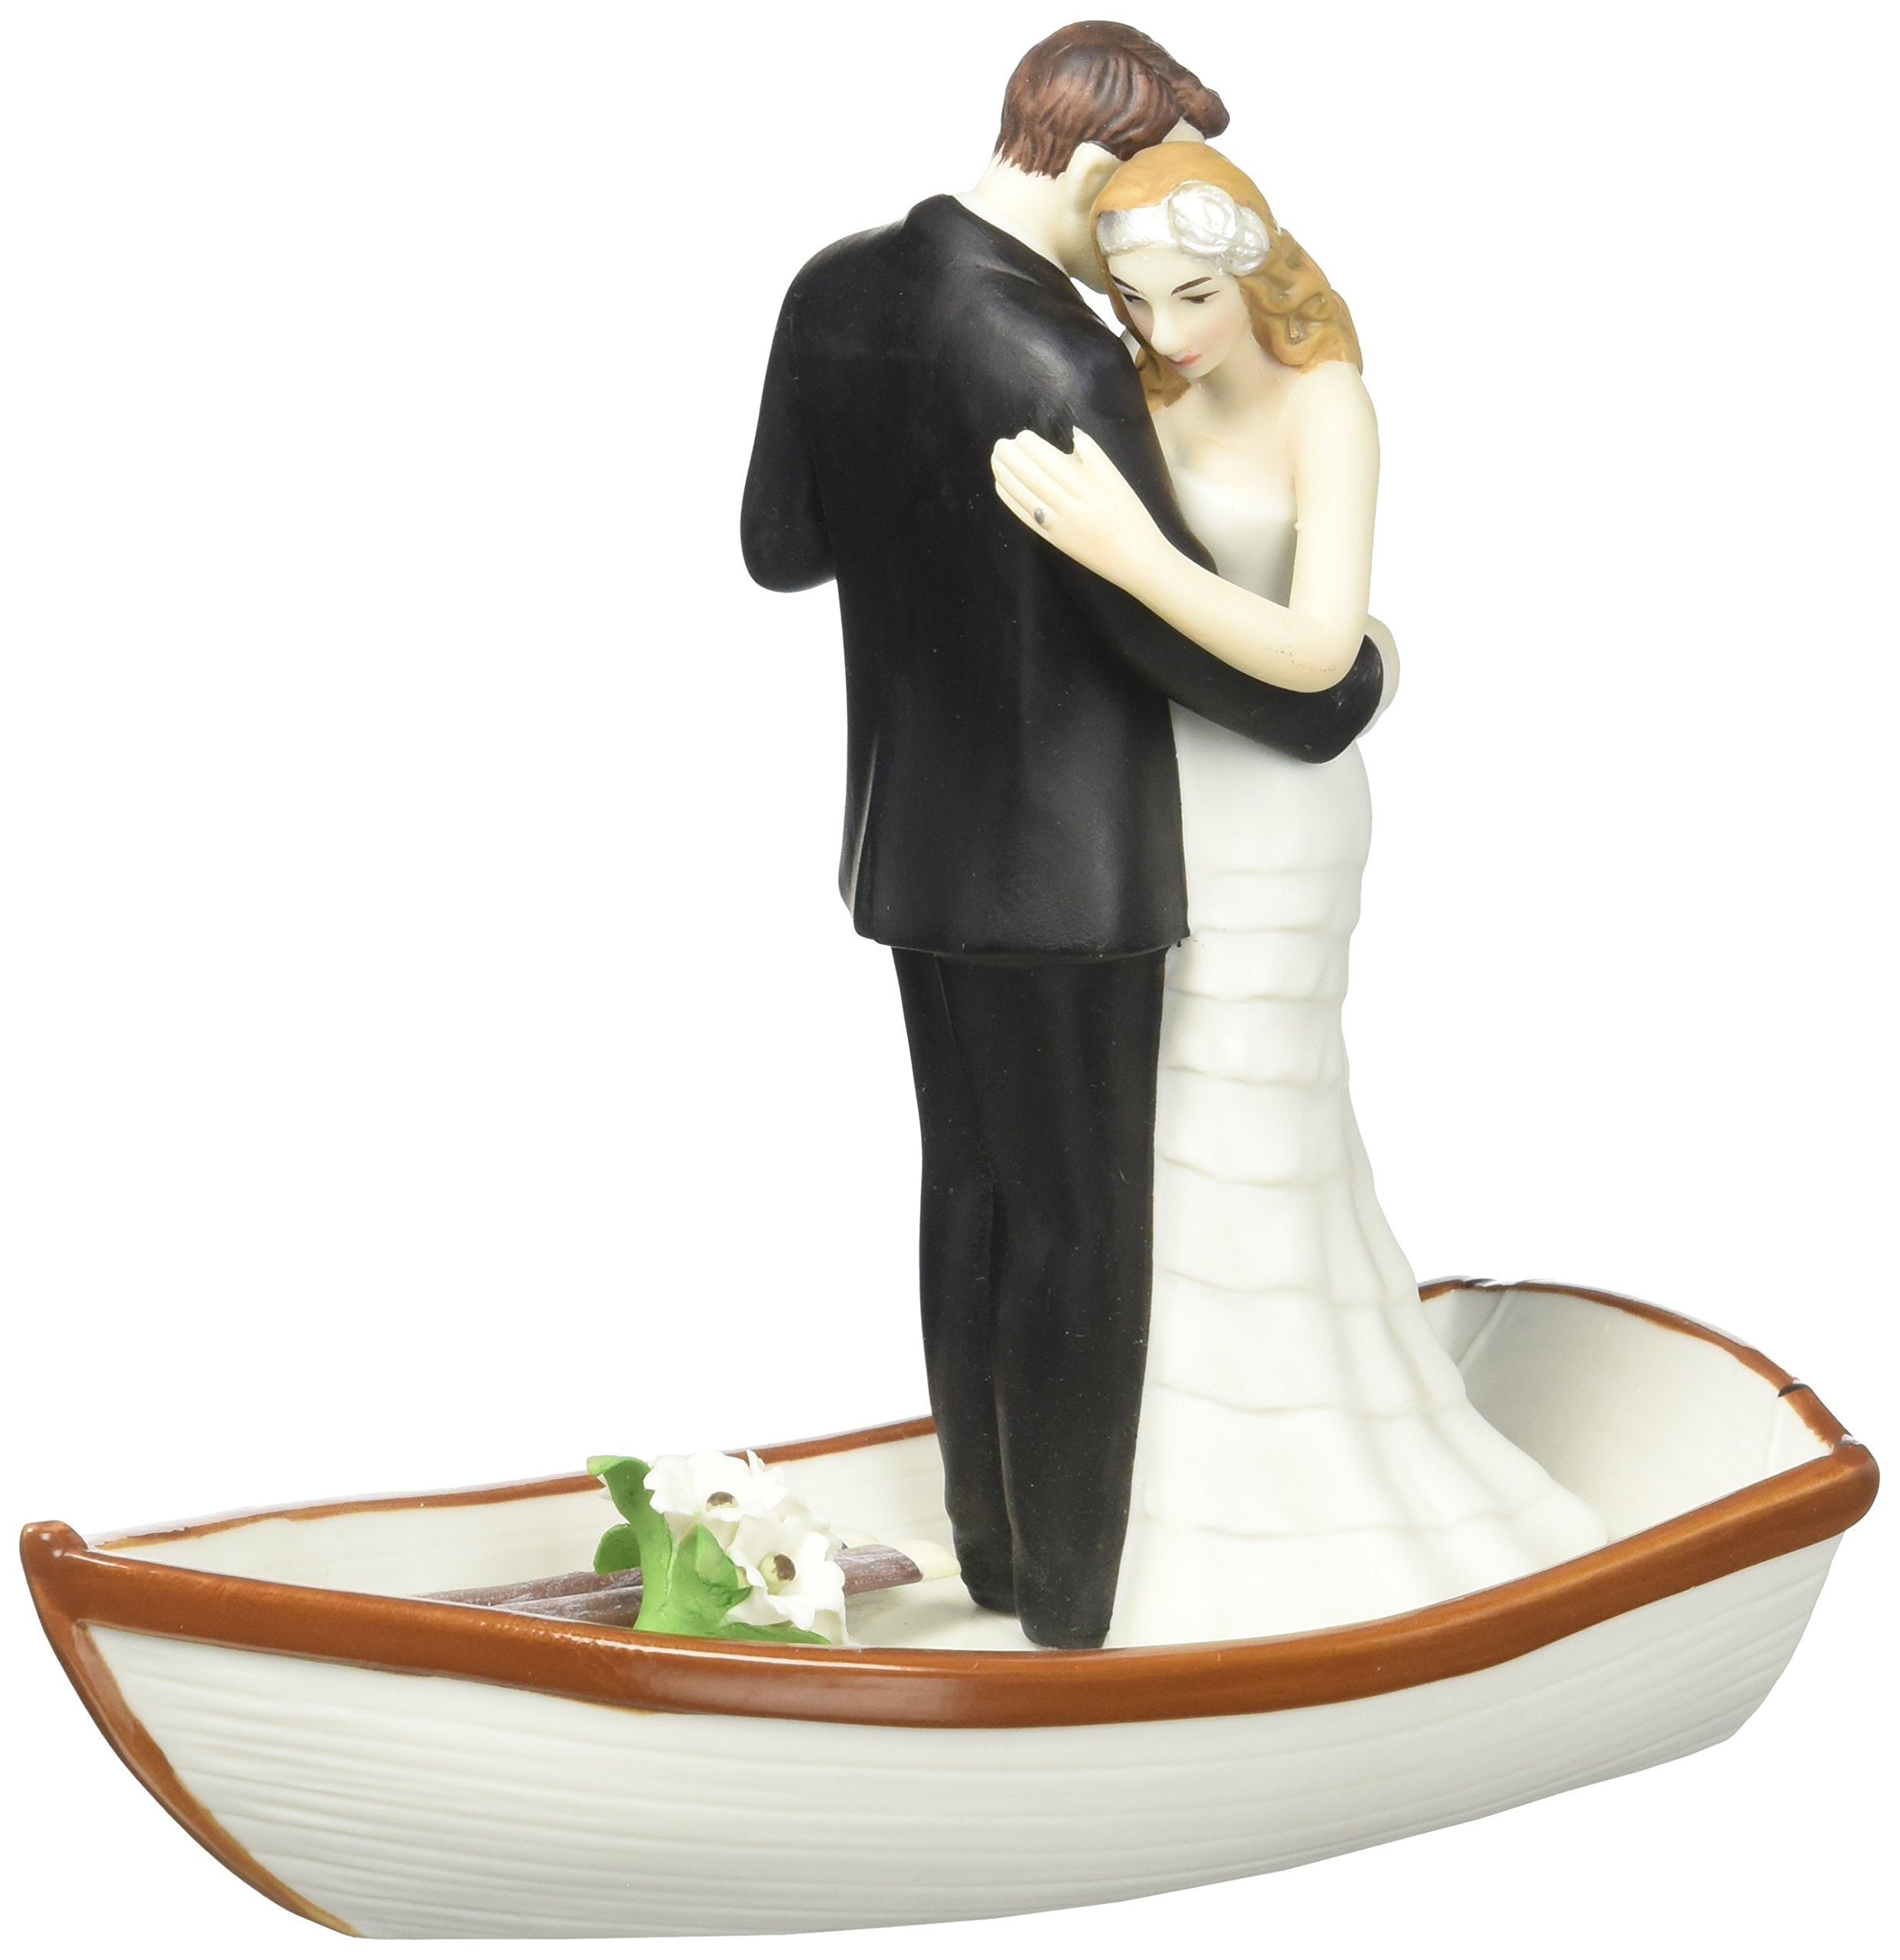 Weddingstar 9352'' Row Away Rowboat Couple by Weddingstar Inc.